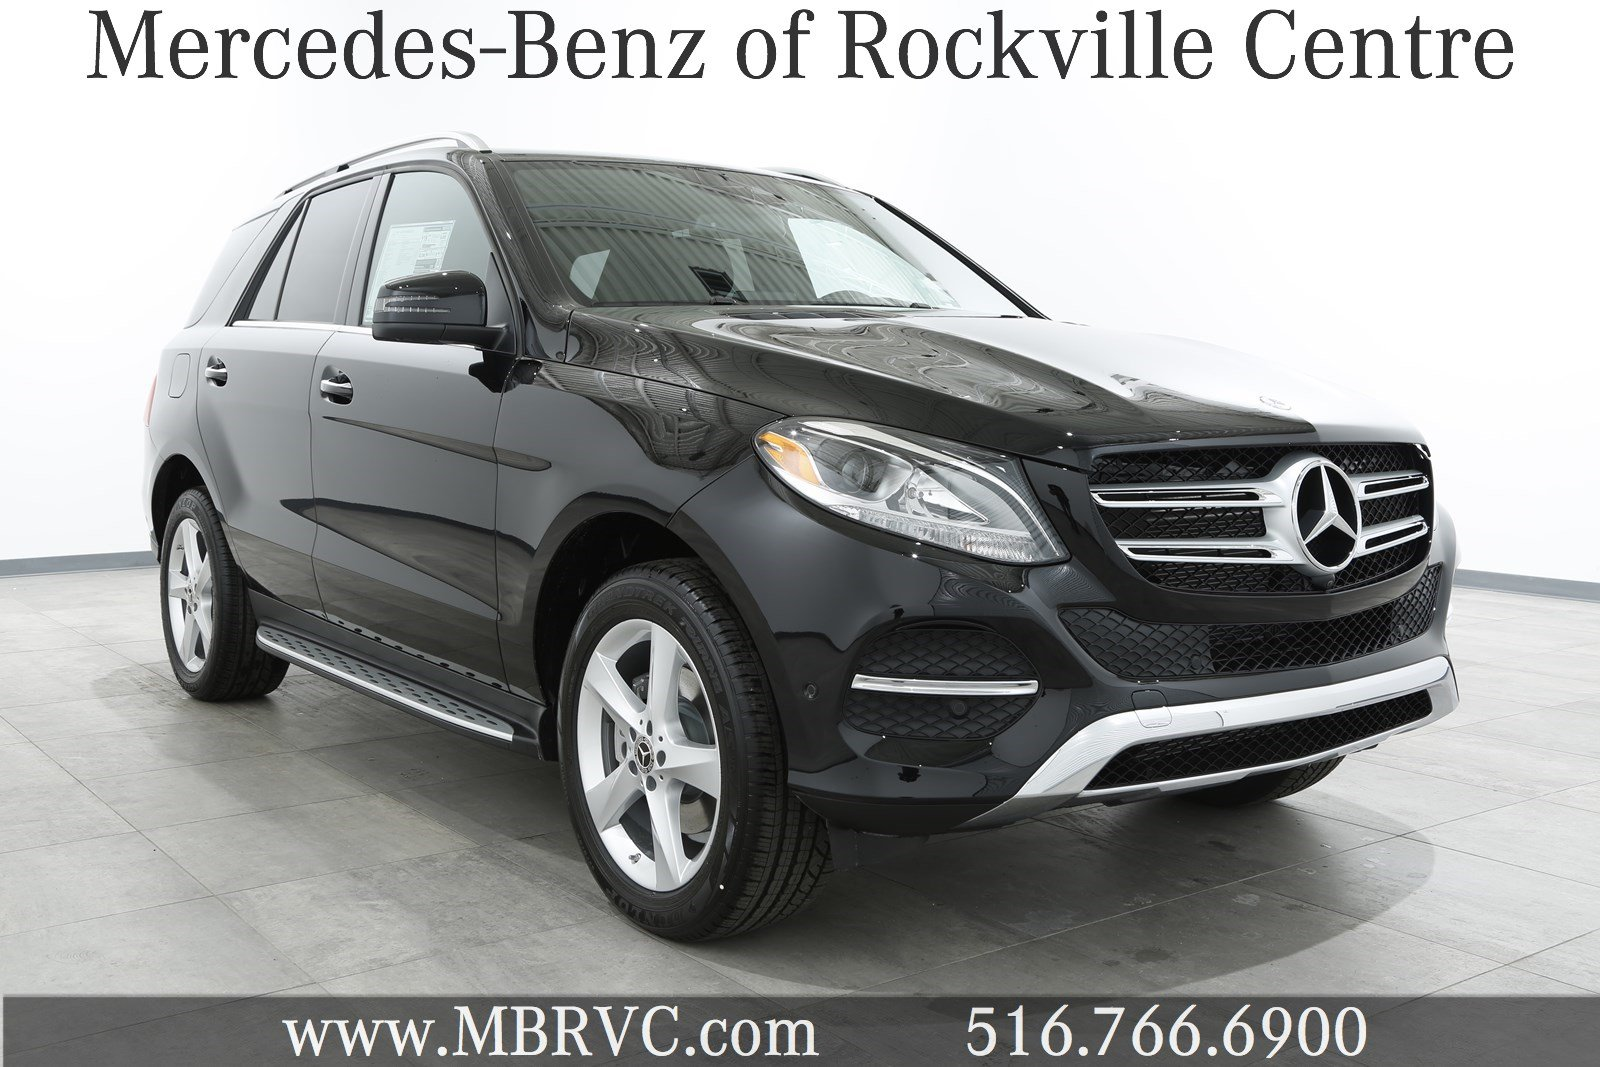 New 2017 mercedes benz gle gle350 suv in rockville centre for 2017 mercedes benz gle350 4matic price